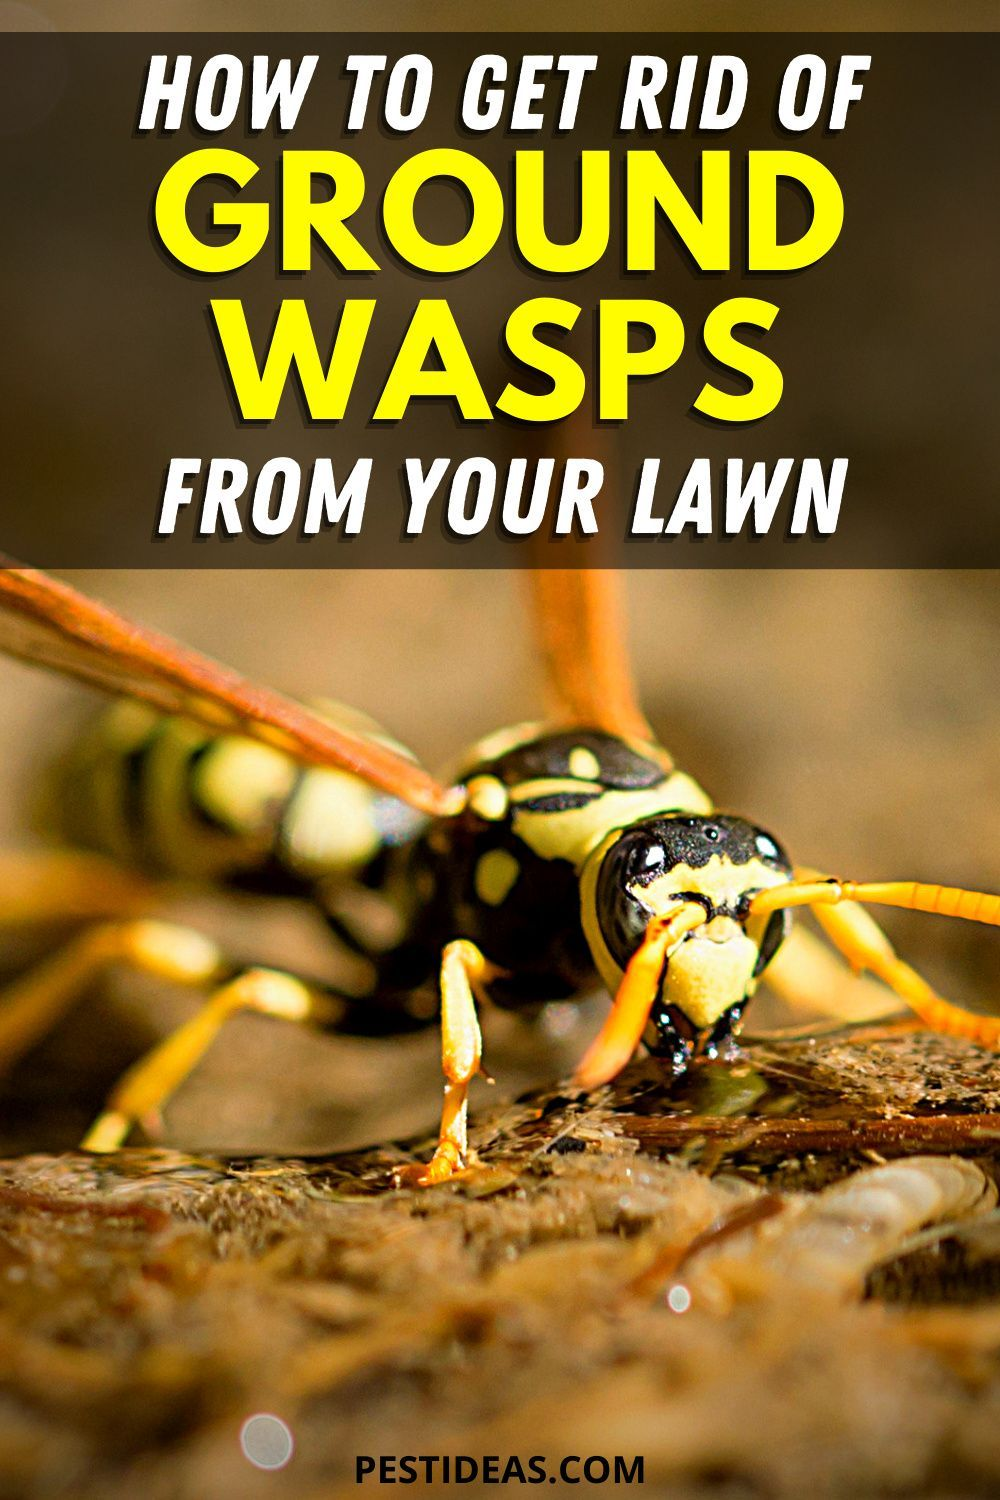 Get rid of ground wasps from your lawn get rid of wasps